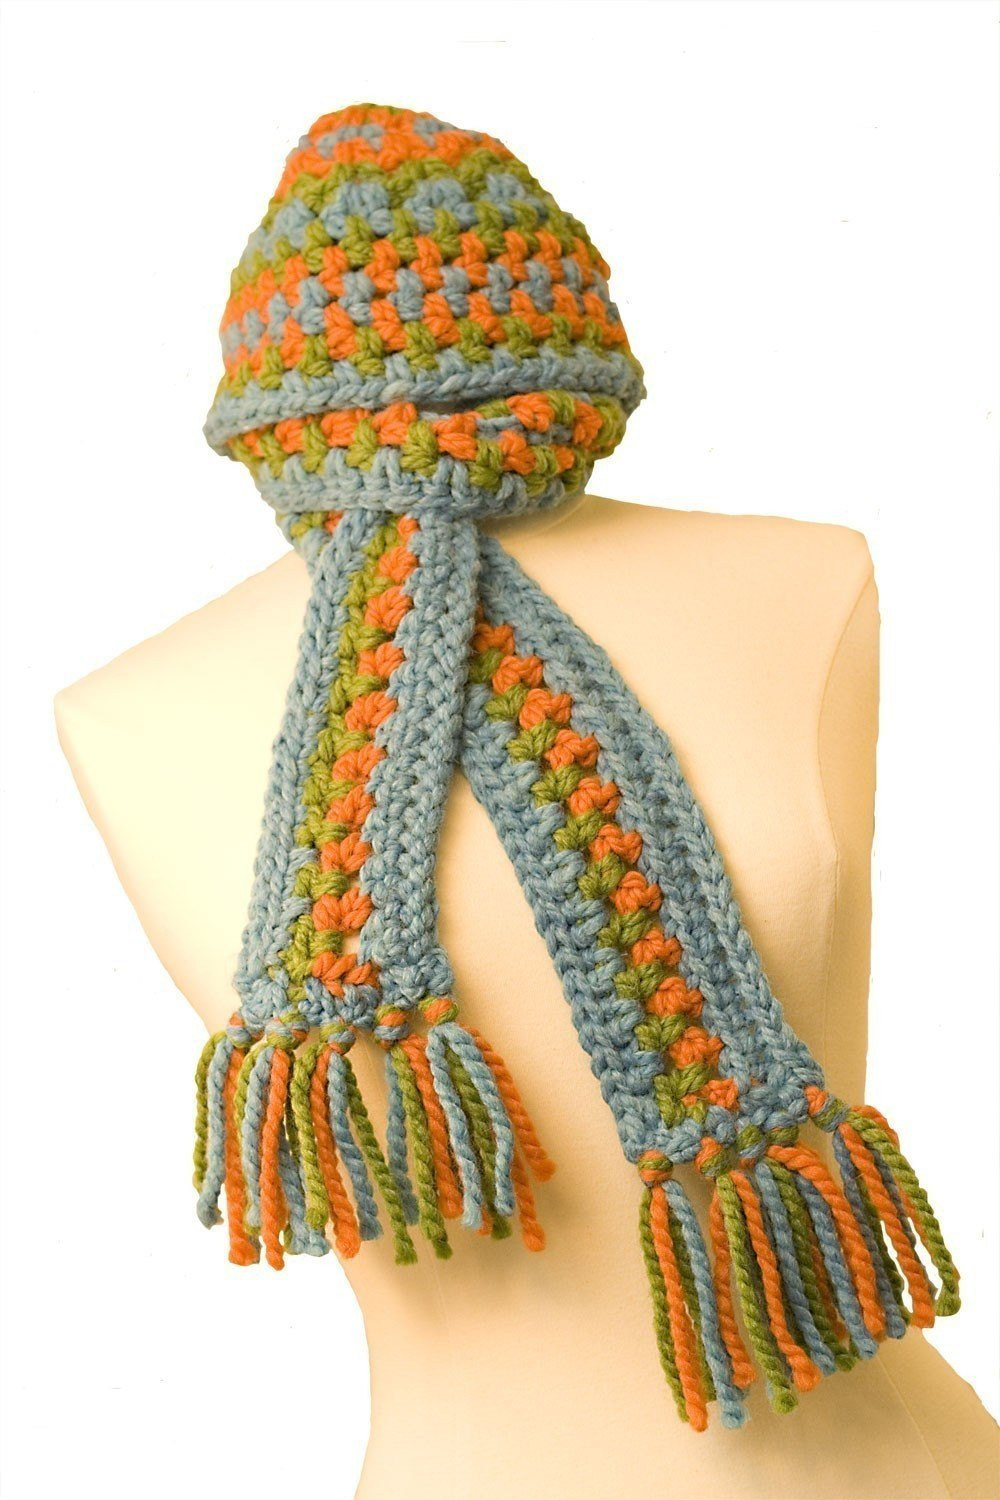 Luxury Crochet Scarf Patterns Find Free Patterns for Crocheting Crochet Hat and Scarf Of Superb 50 Pics Crochet Hat and Scarf